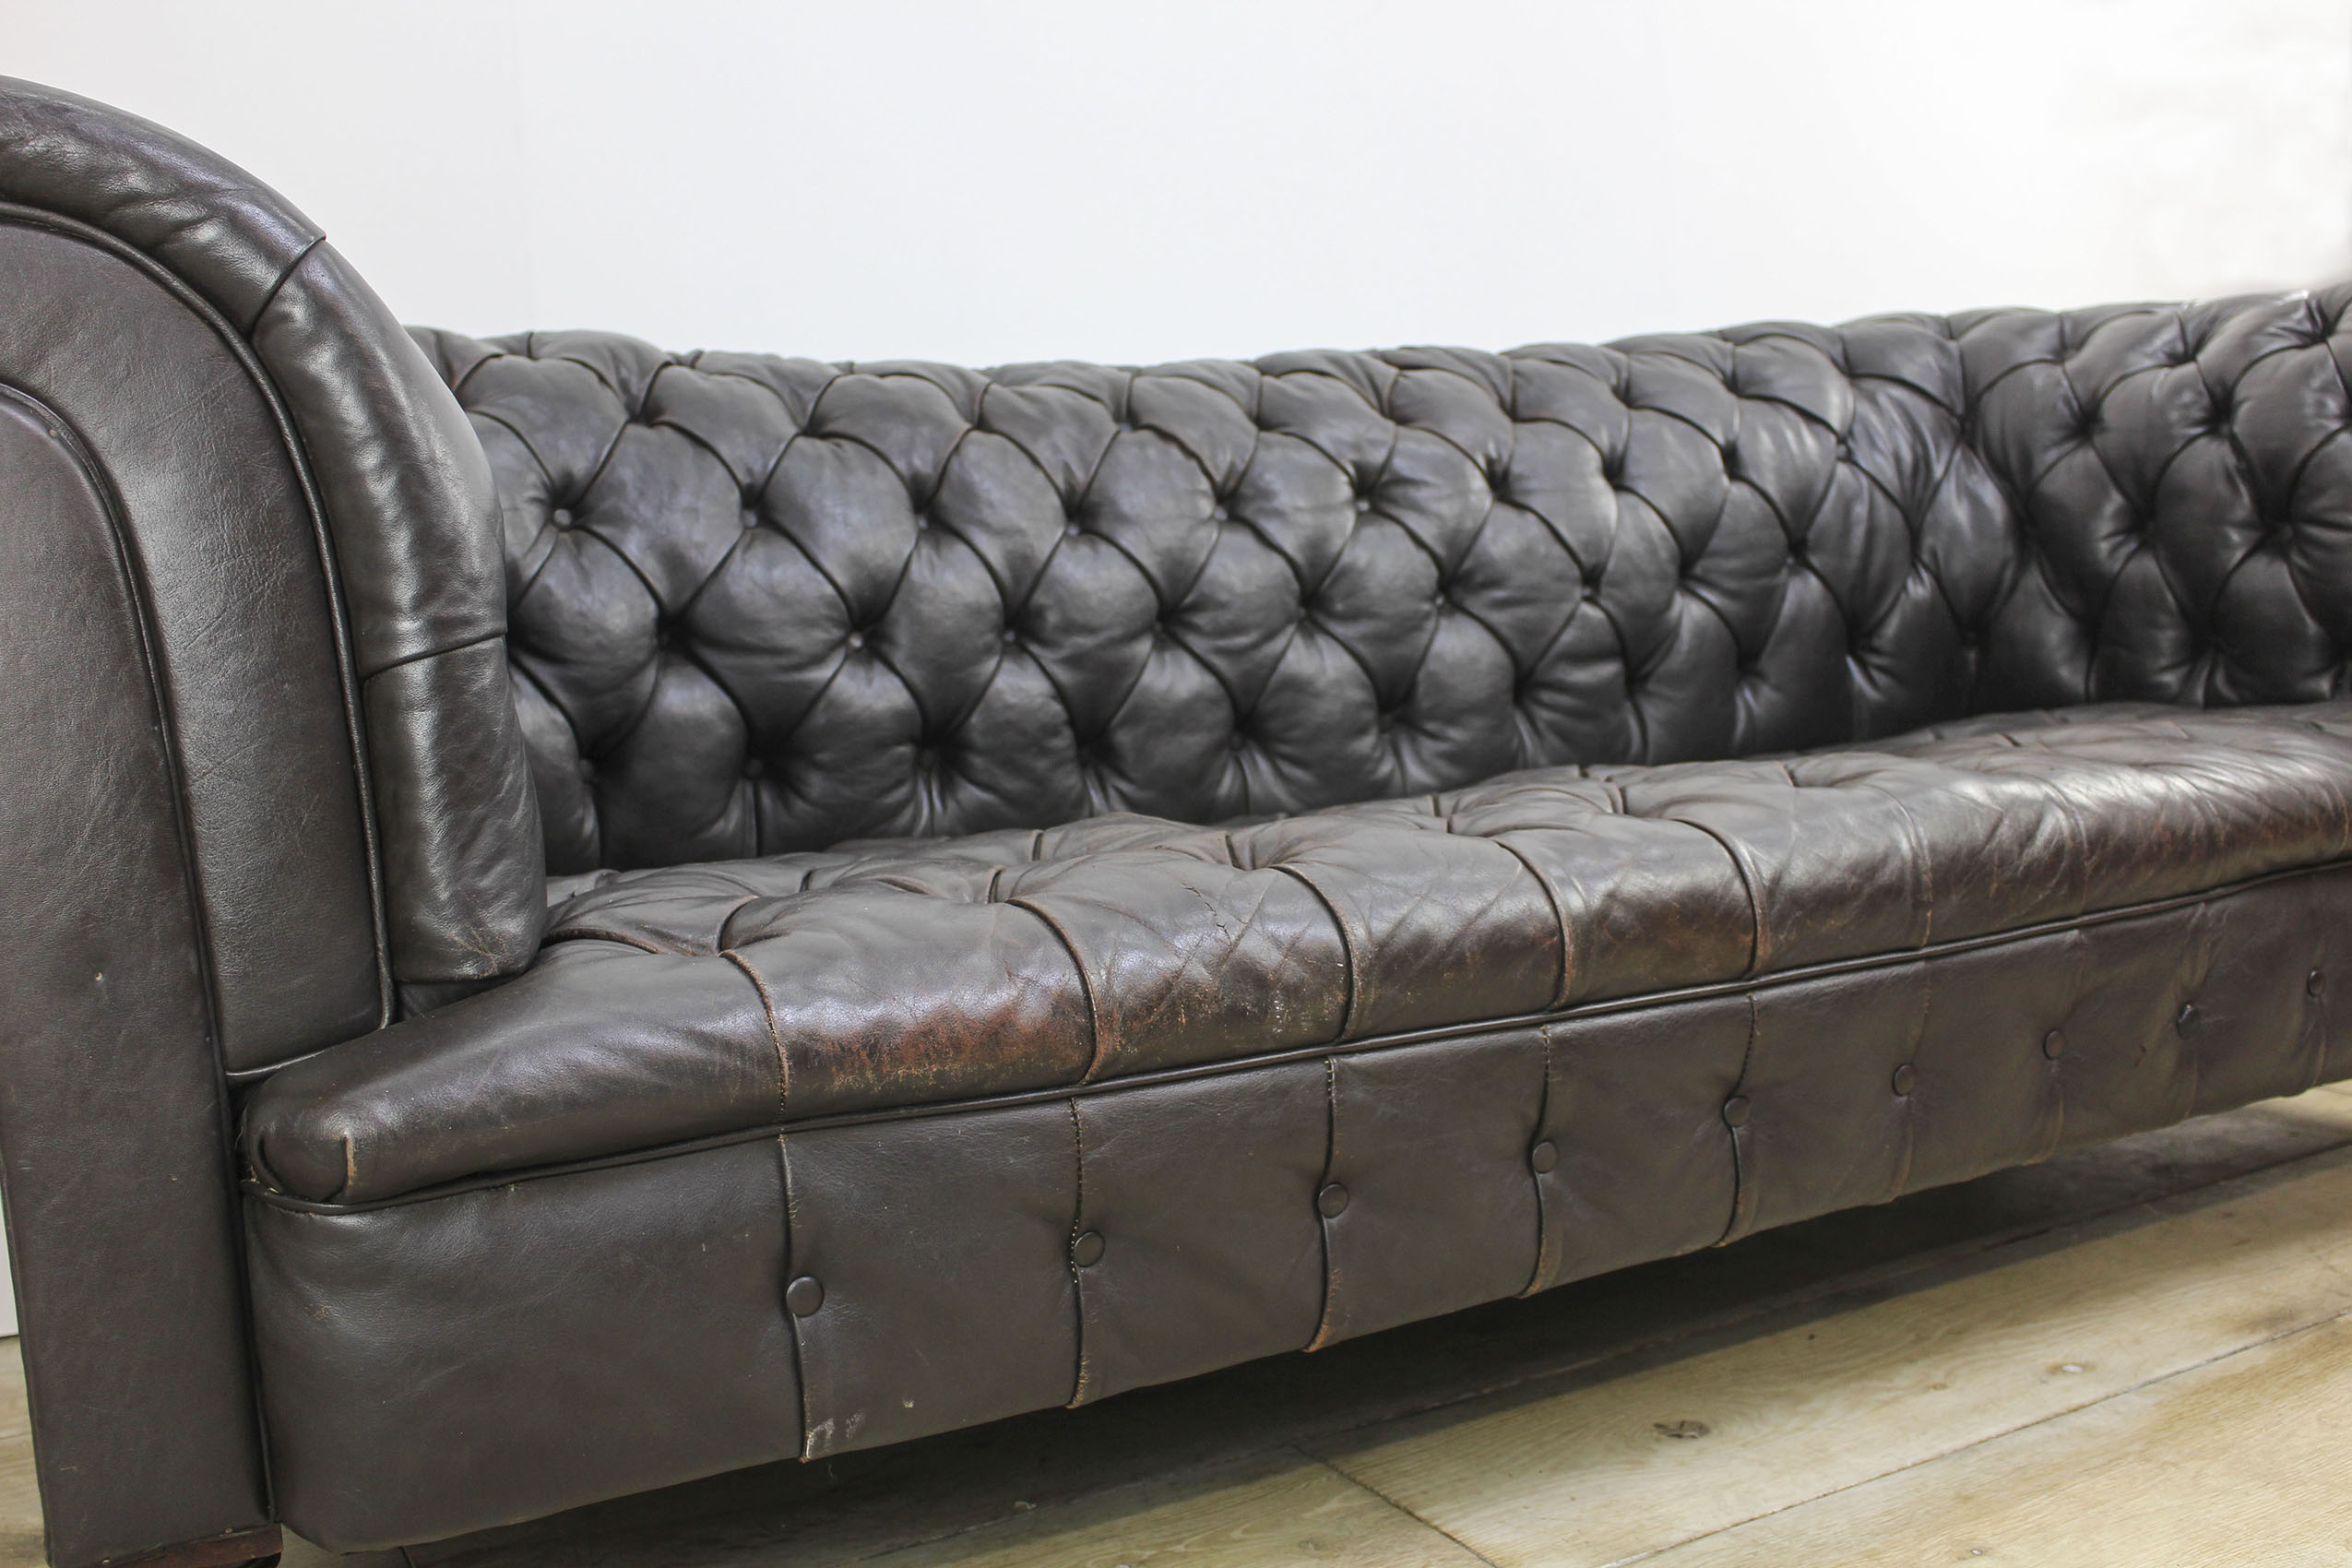 ANTIQUE LEATHER CHESTERFIELD SOFA BY HAMPTON U0026 SONS PALL MALL